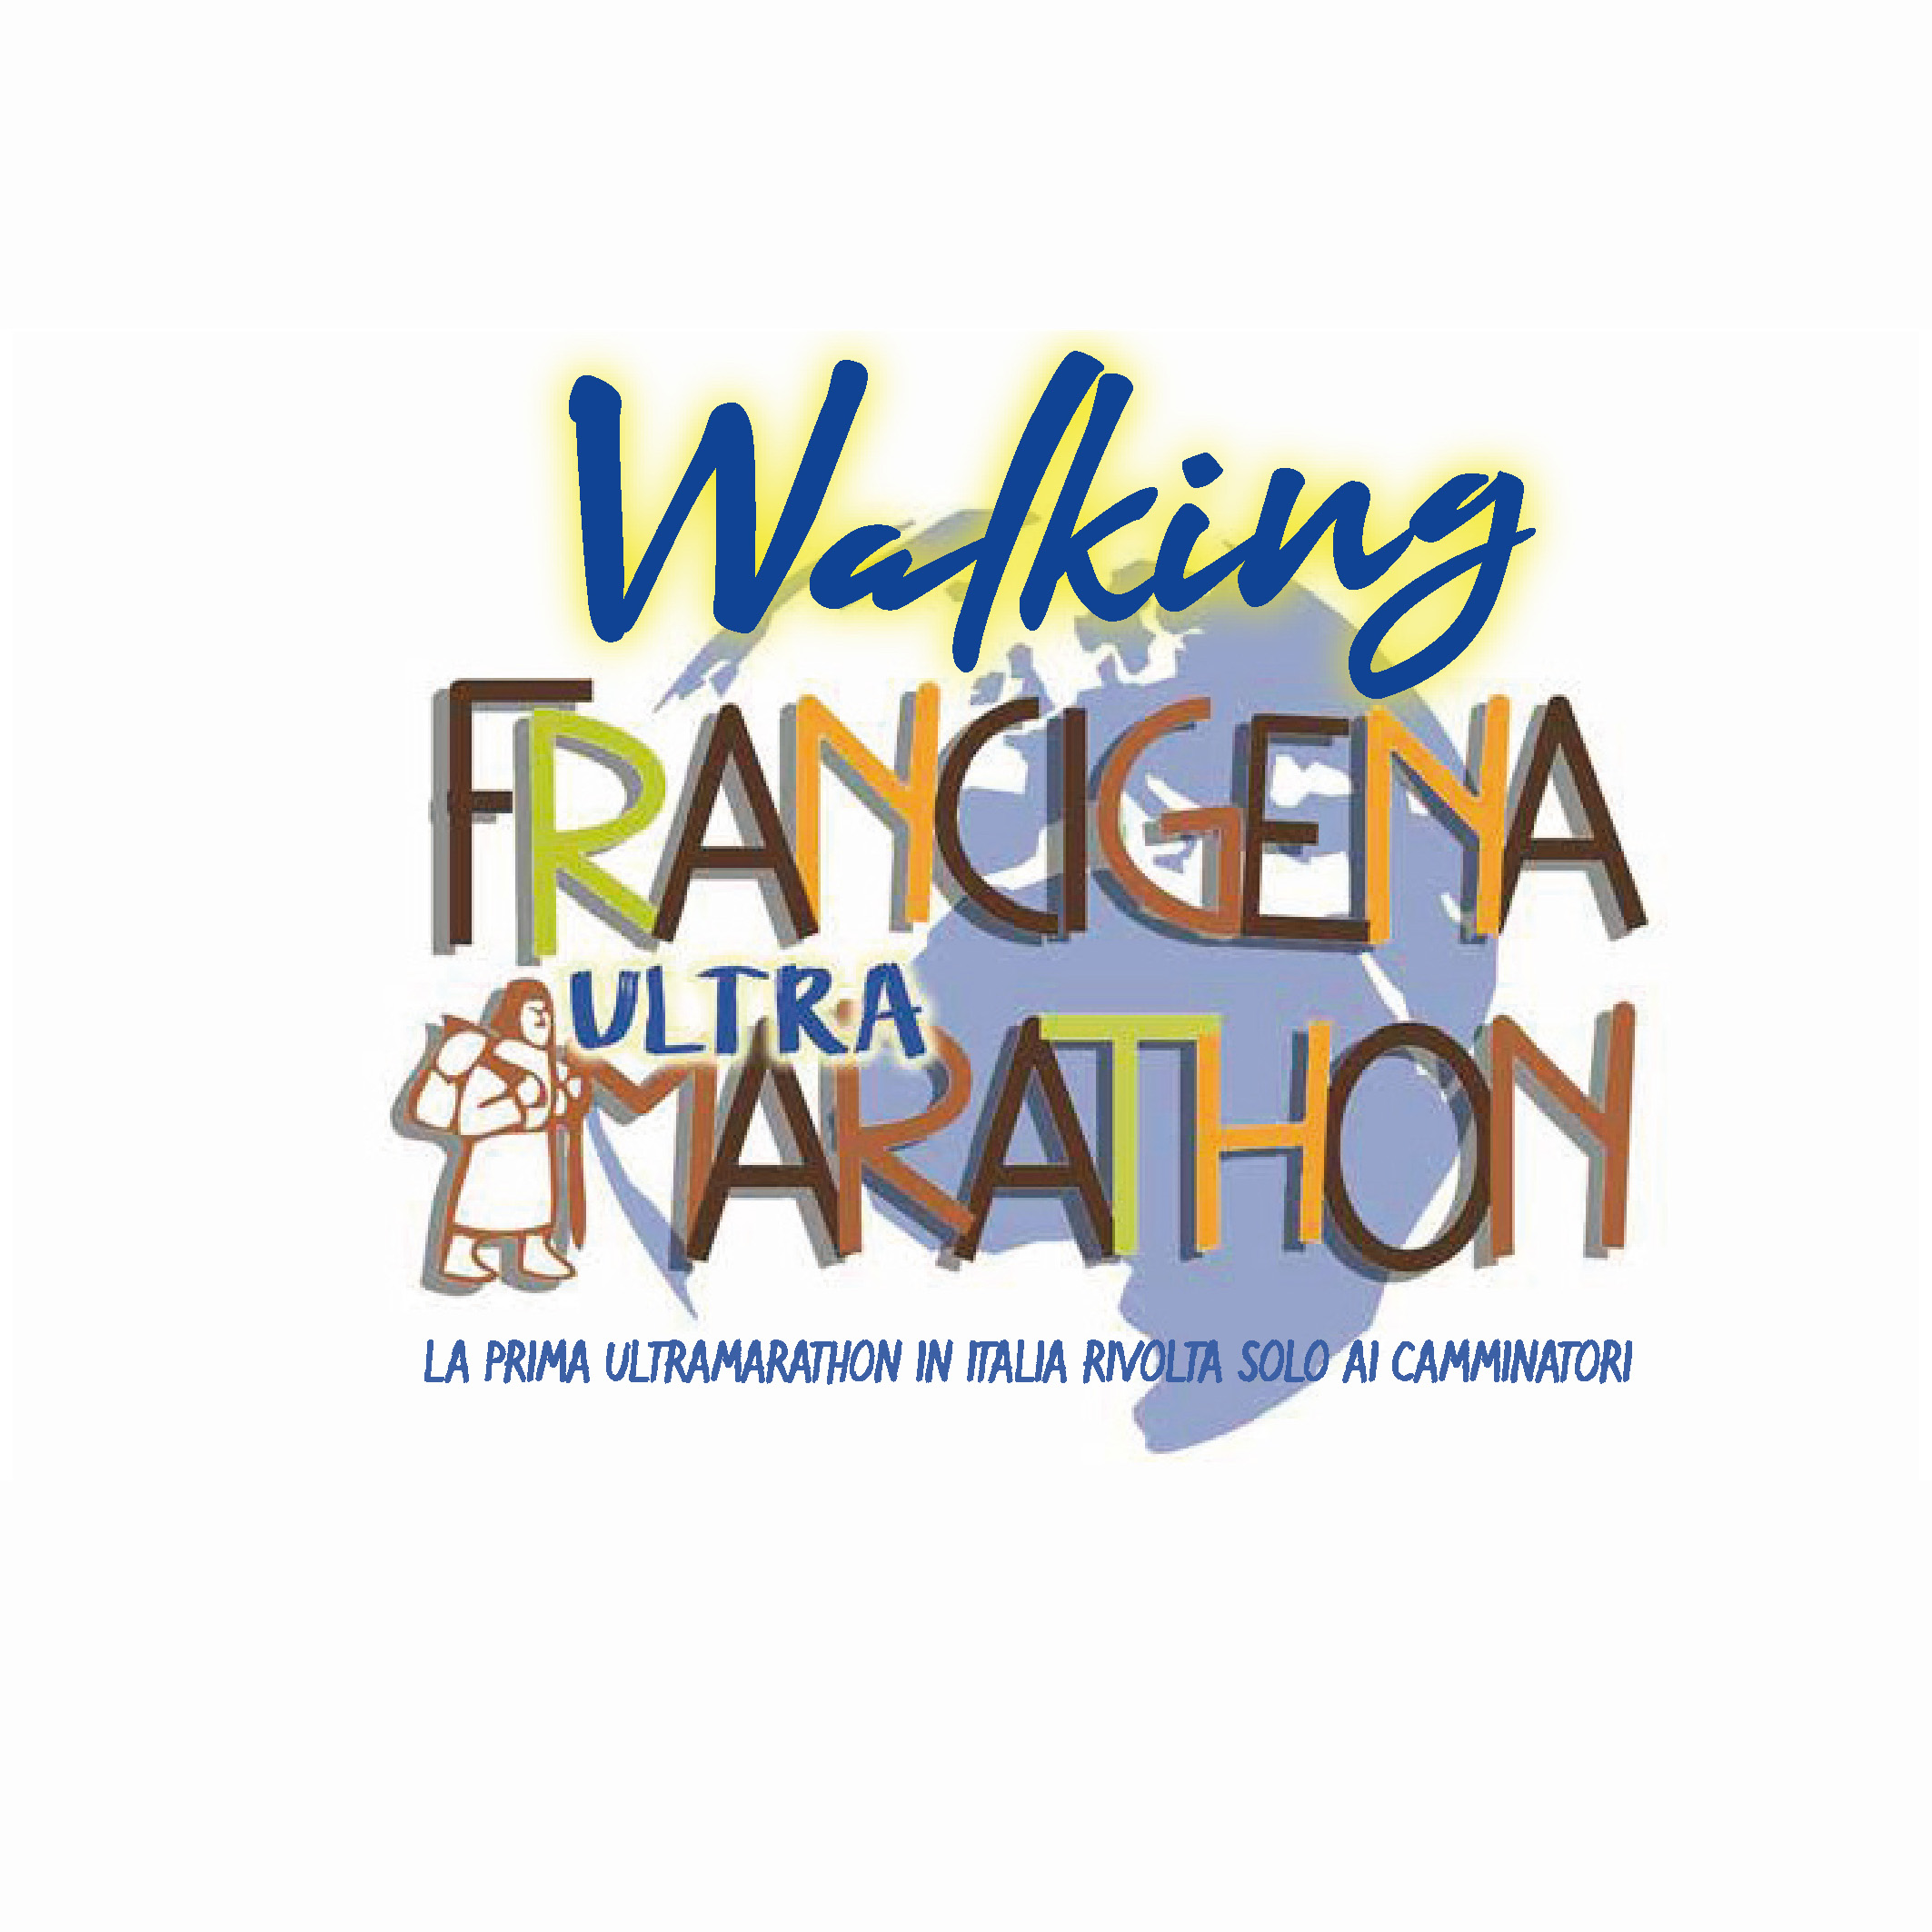 Walking Francigena Ultramarathon